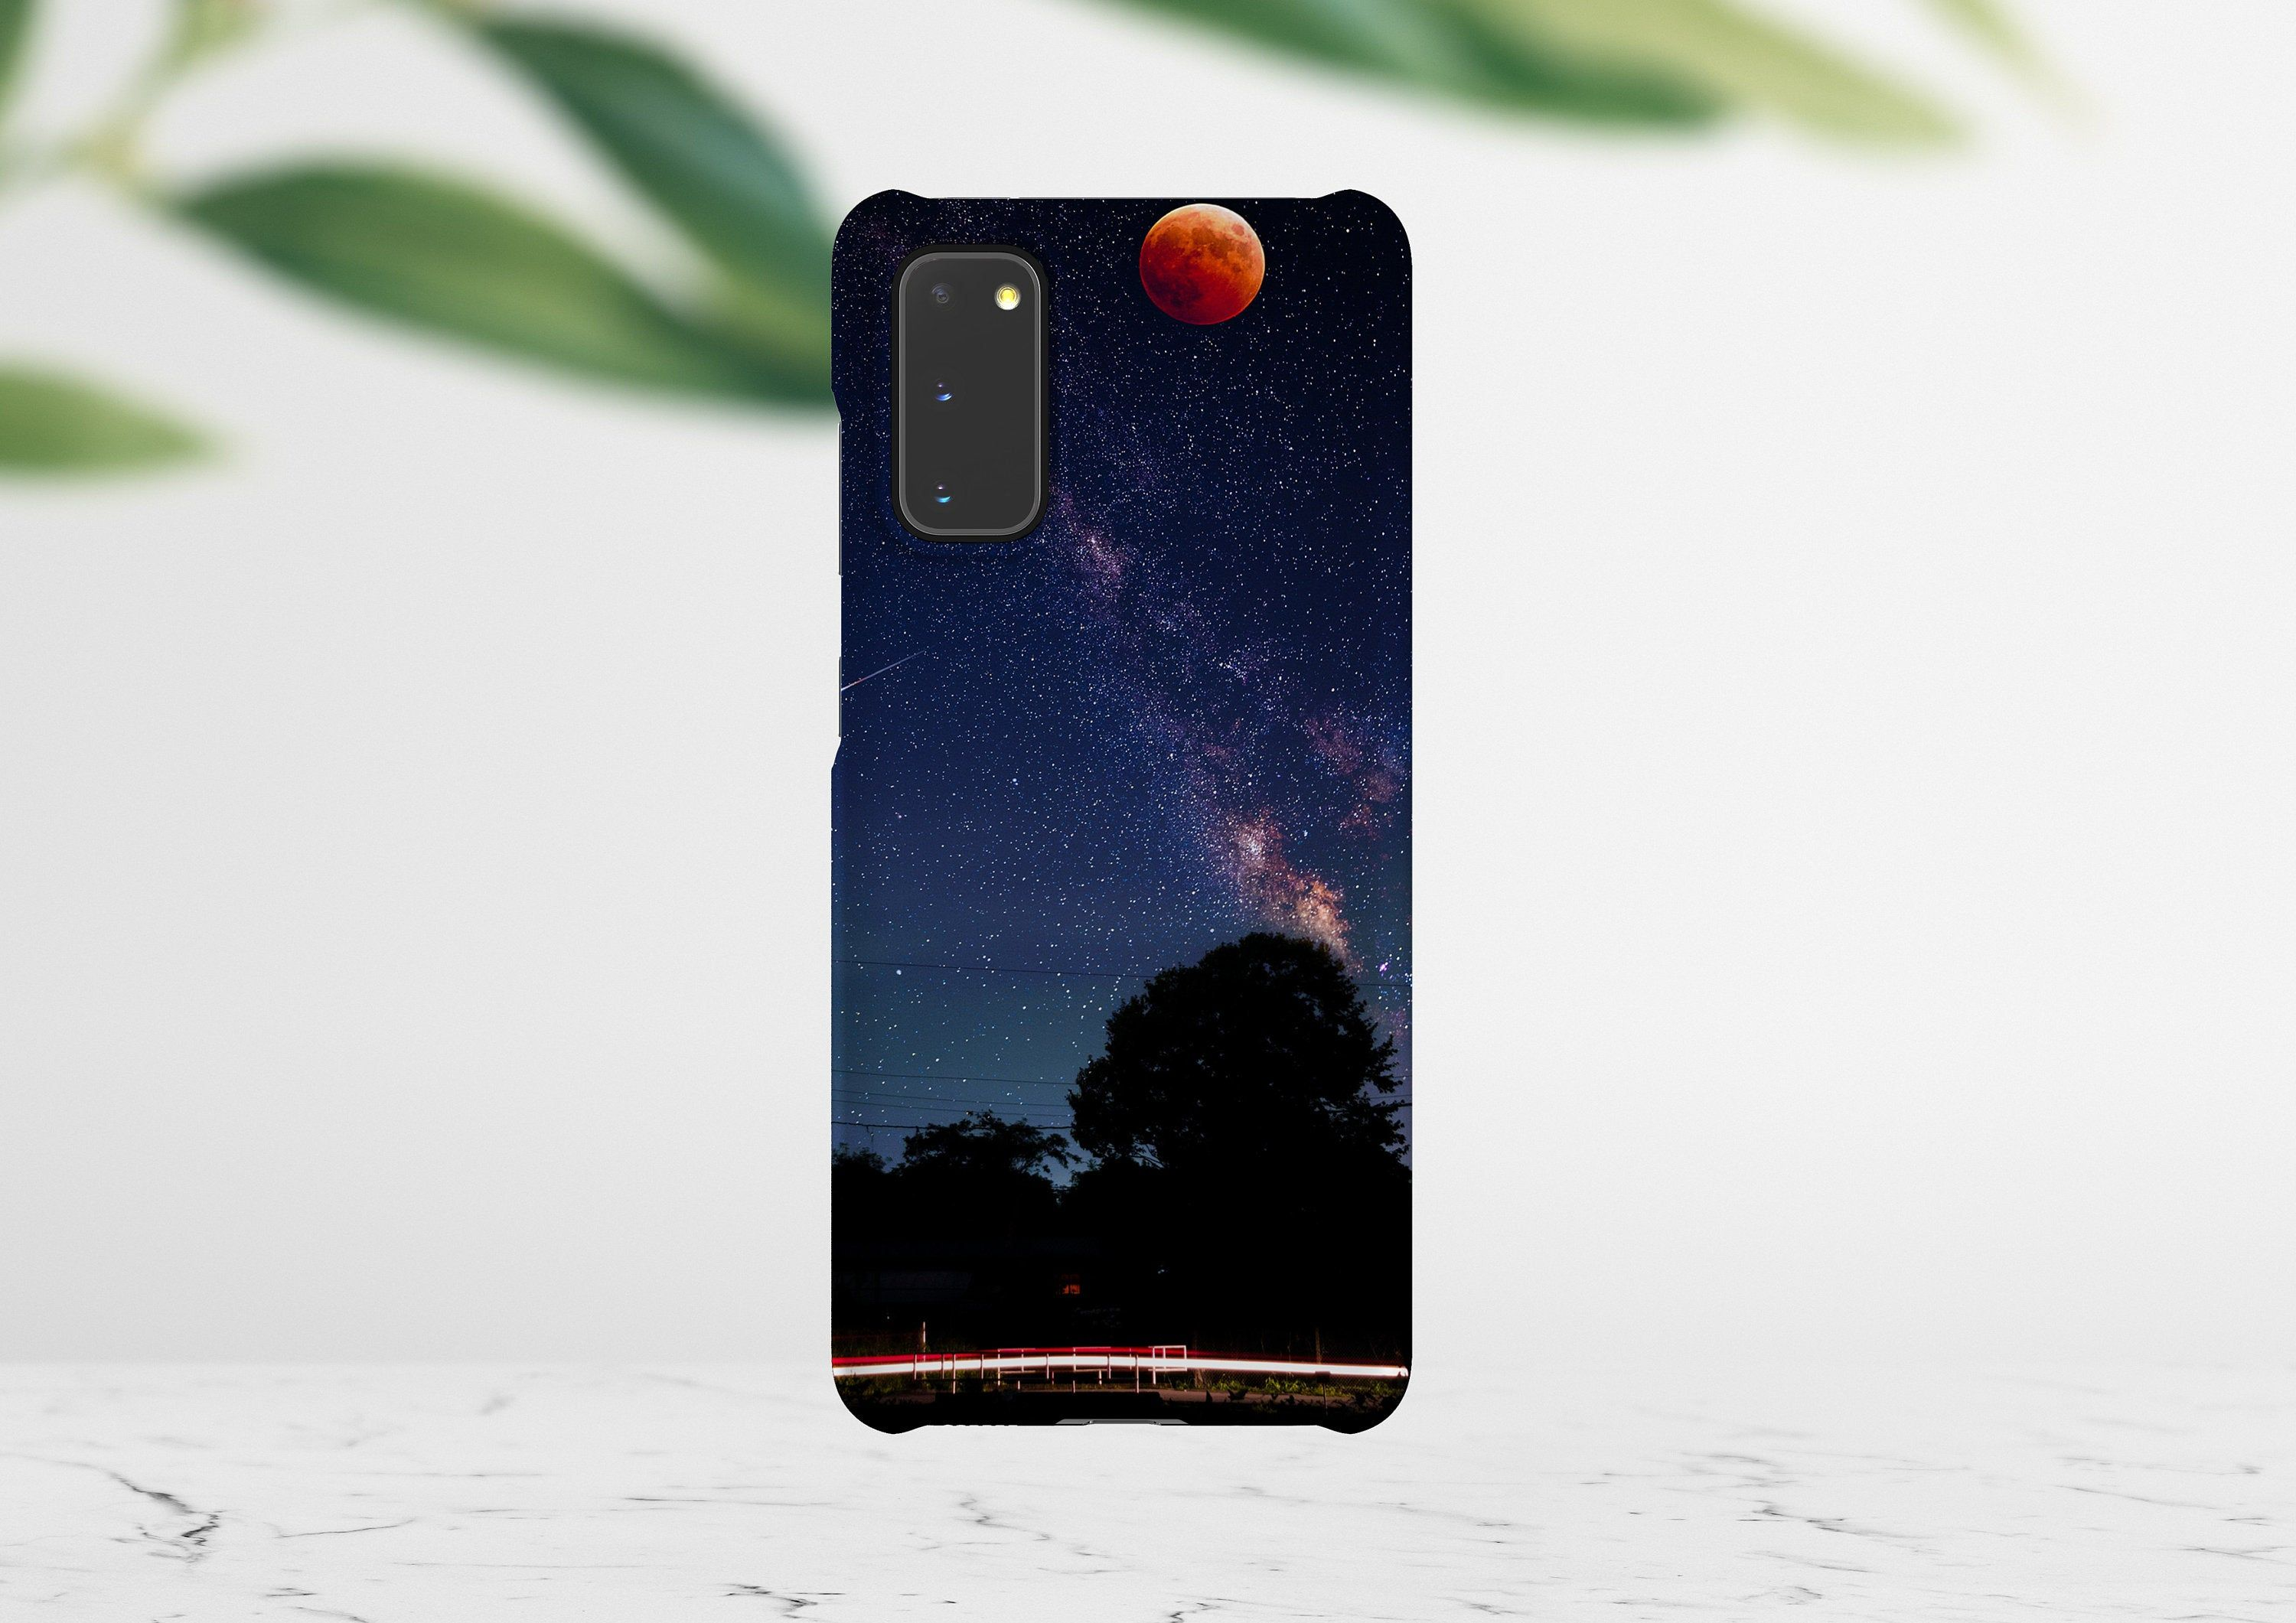 Moon & Sky Galaxy S20 Case Galaxy S20 Ultra Case Galaxy S10 Case Galaxy S10e Case Galaxy S10 Plus Case Galaxy Note 9 Galaxy Note 10 #GalaxyA70 #GalaxyS10PlusCase #GalaxyS10eCase #GalaxyS9Case #GalaxyNote10Case #GalaxyNote9Case #GalaxyS10Case #GalaxyNote10Plus #GalaxyS9PlusCase #GalaxyNote8